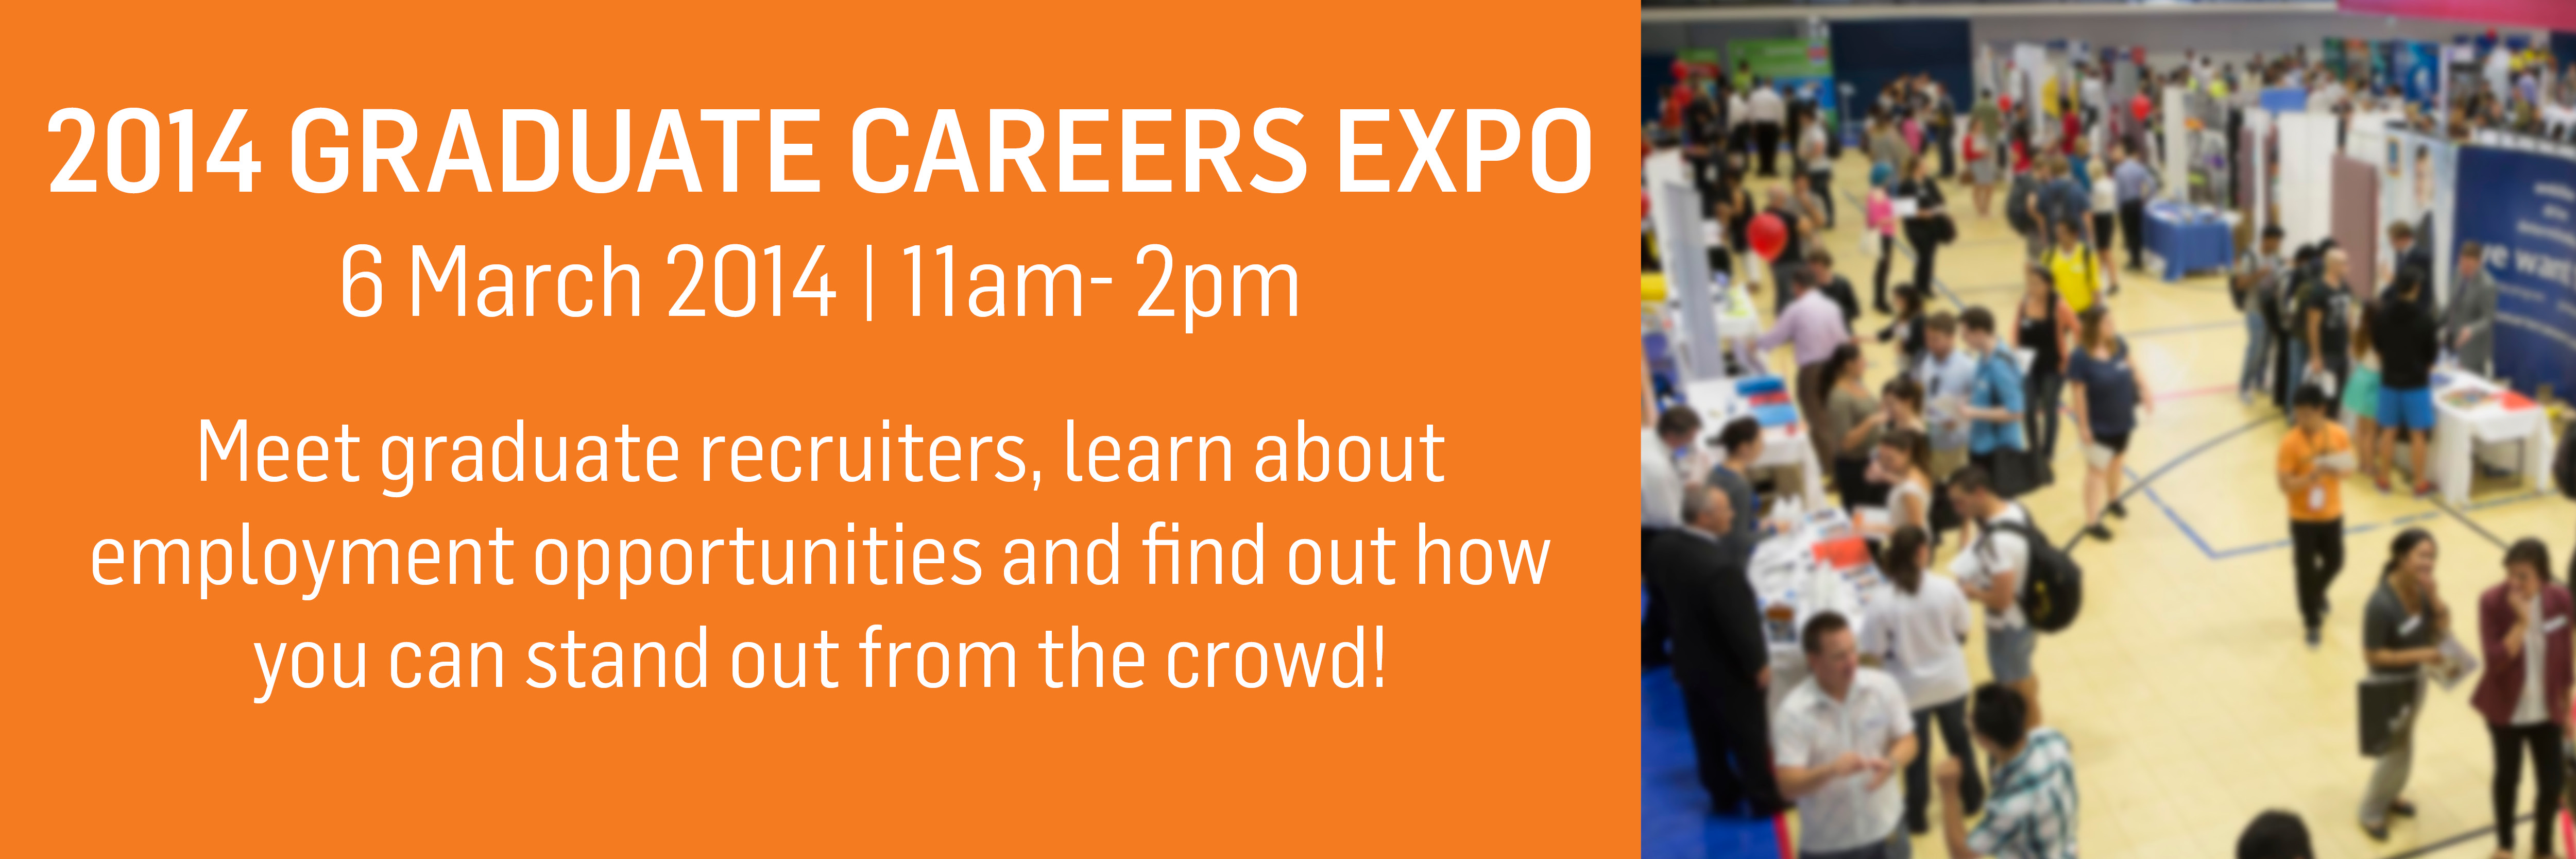 2014 Grad Careers Expo